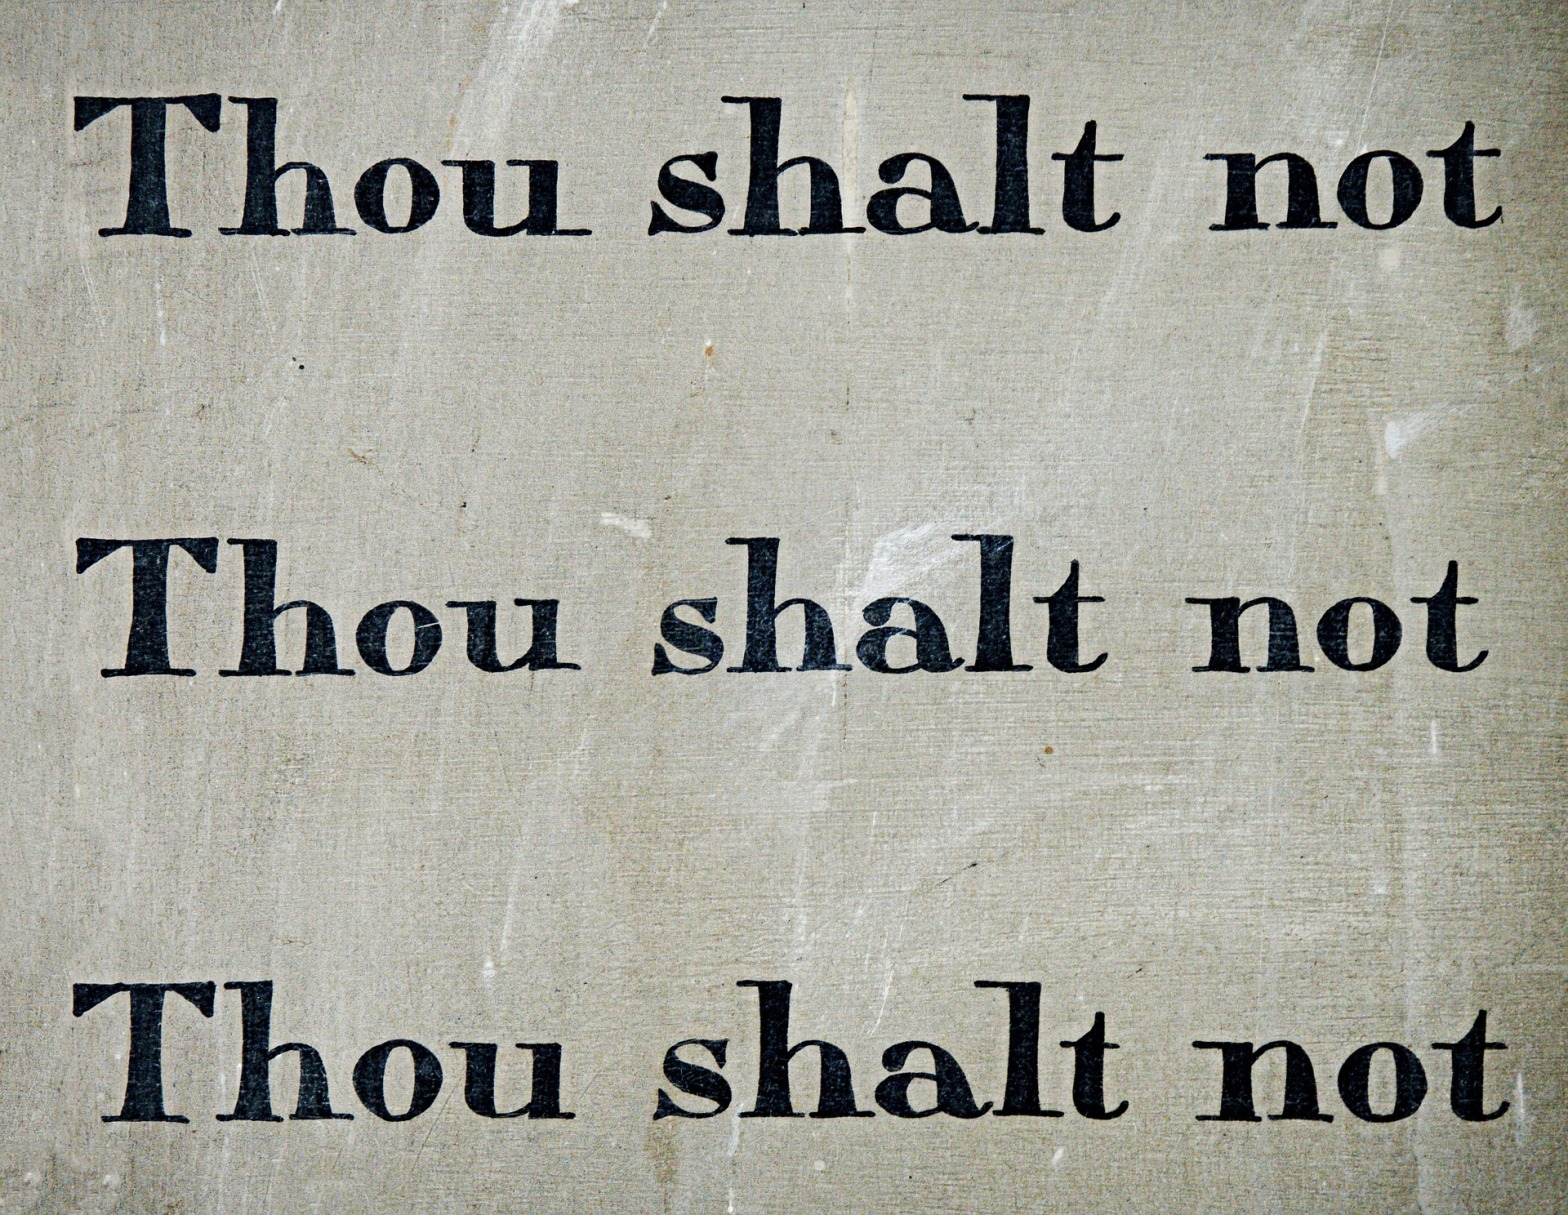 https://pixabay.com/en/commandment-thou-shalt-not-law-1431061/